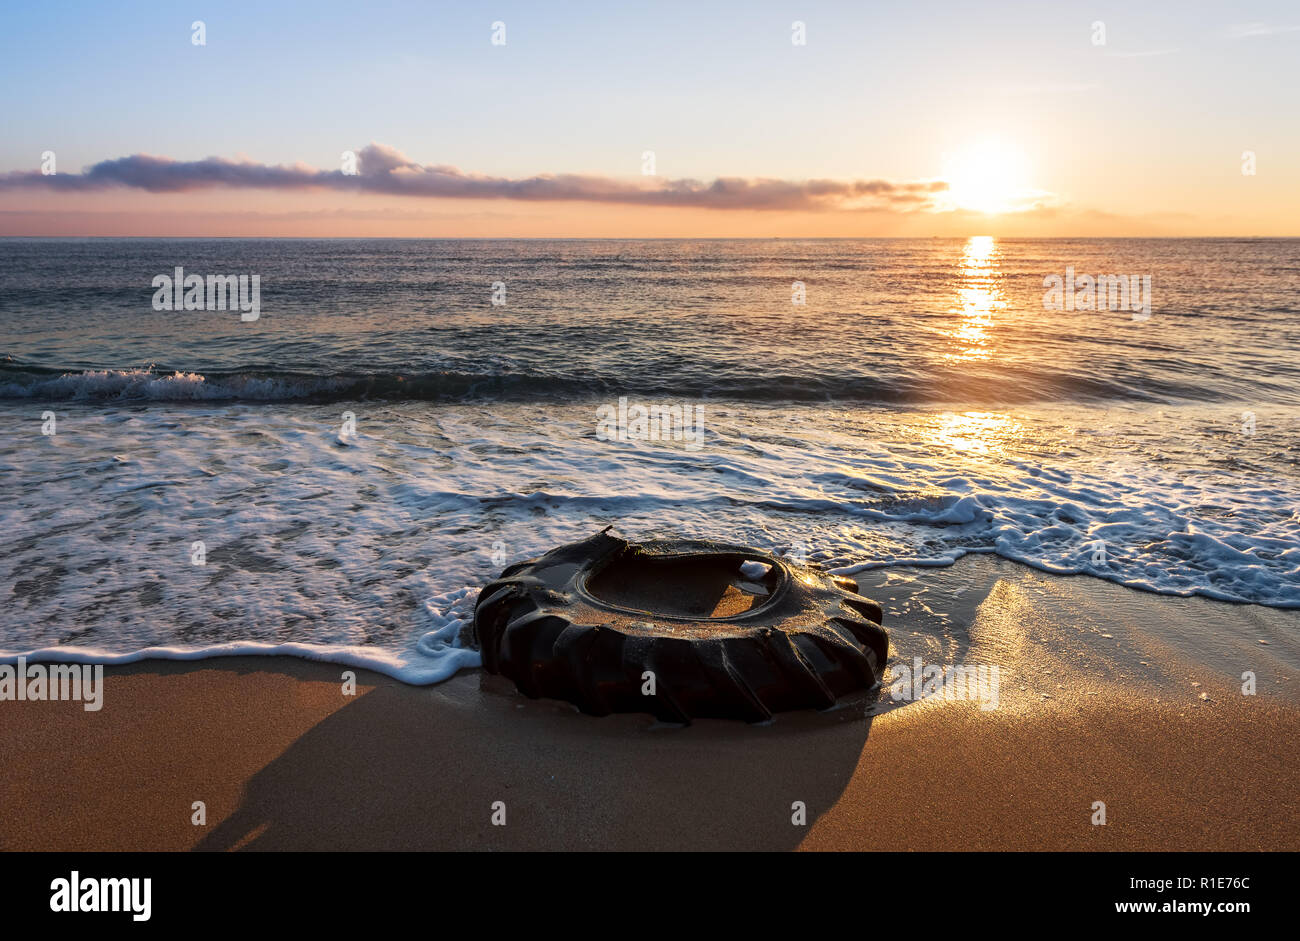 Tyre on the beach. Beautiful sunrise and dirty beach. Stock Photo